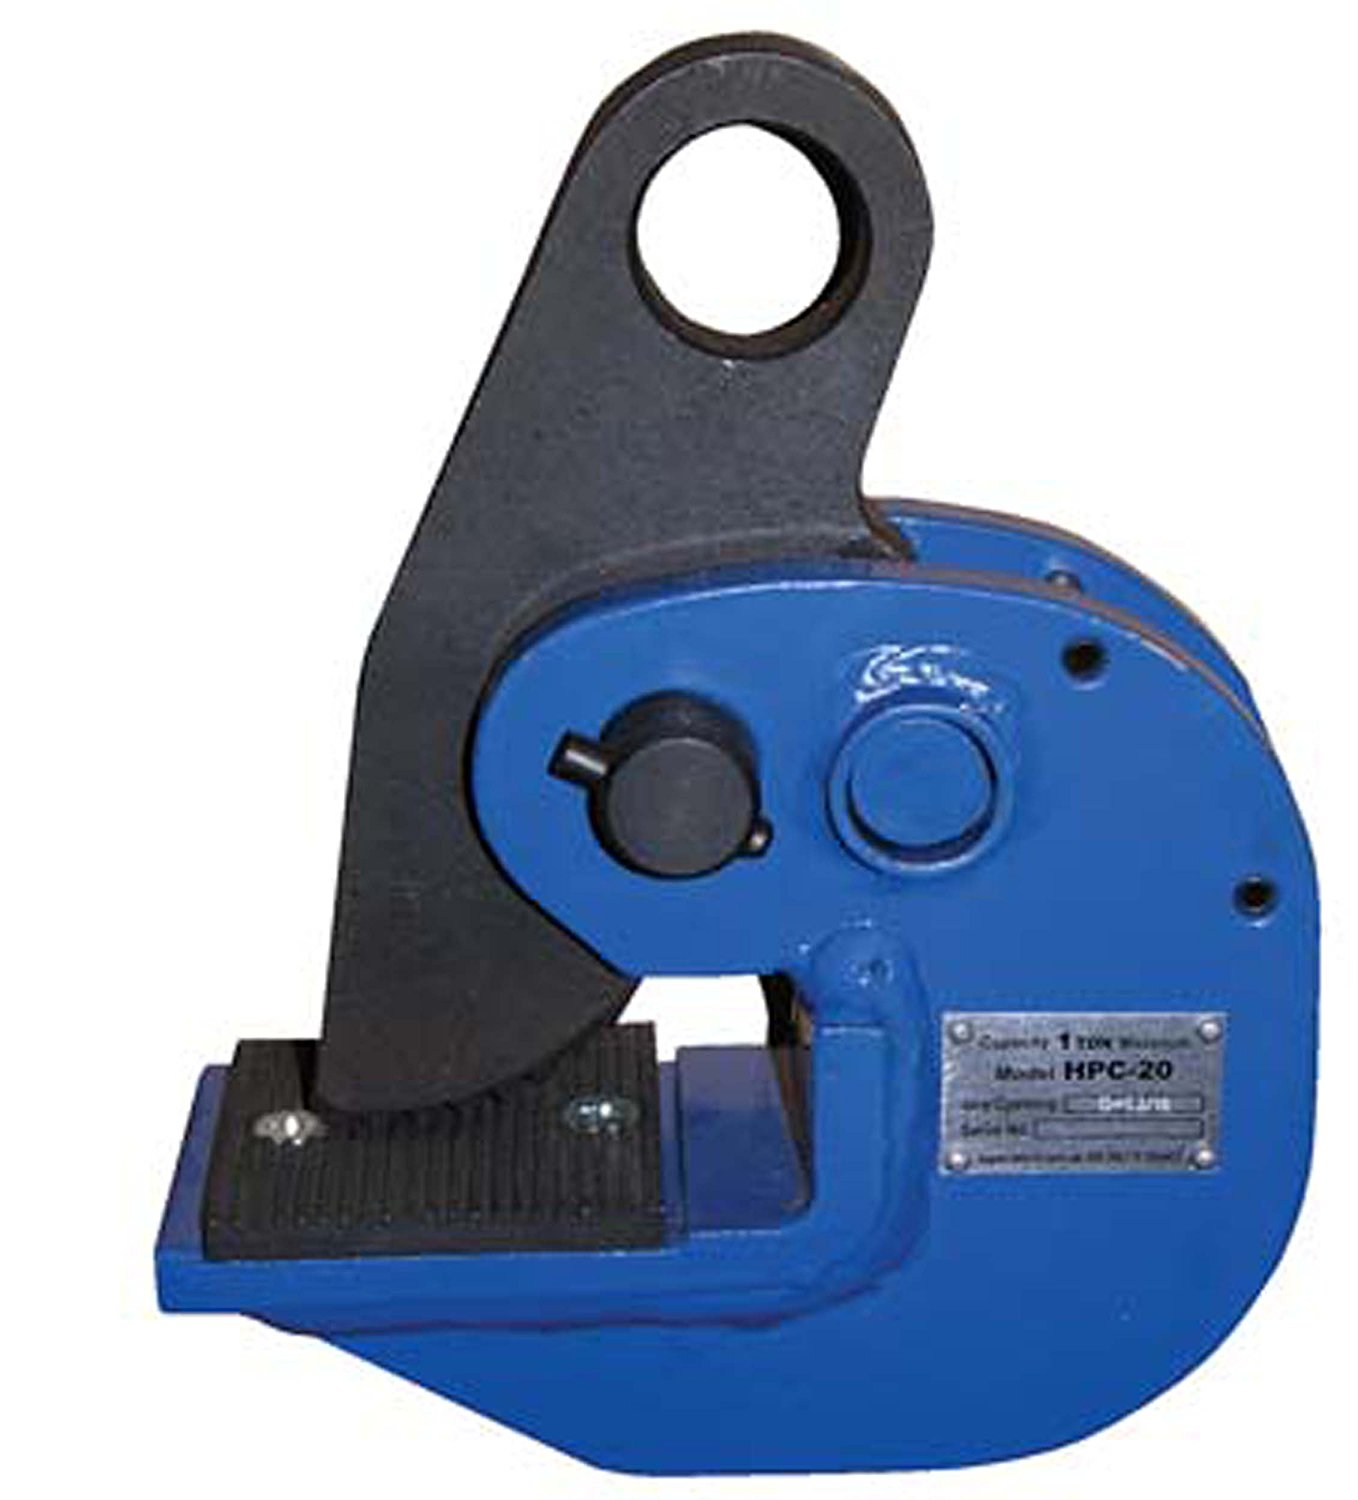 Vestil HPC-140 Horizontal Plate Lifting Clamp Steel 14000 lbs Working Load Limit 1-7//16 Plate Thickness 1.2 Bale Opening 1-7//16 Plate Thickness 1.2 Bale Opening Vestil Manufacturing Corp